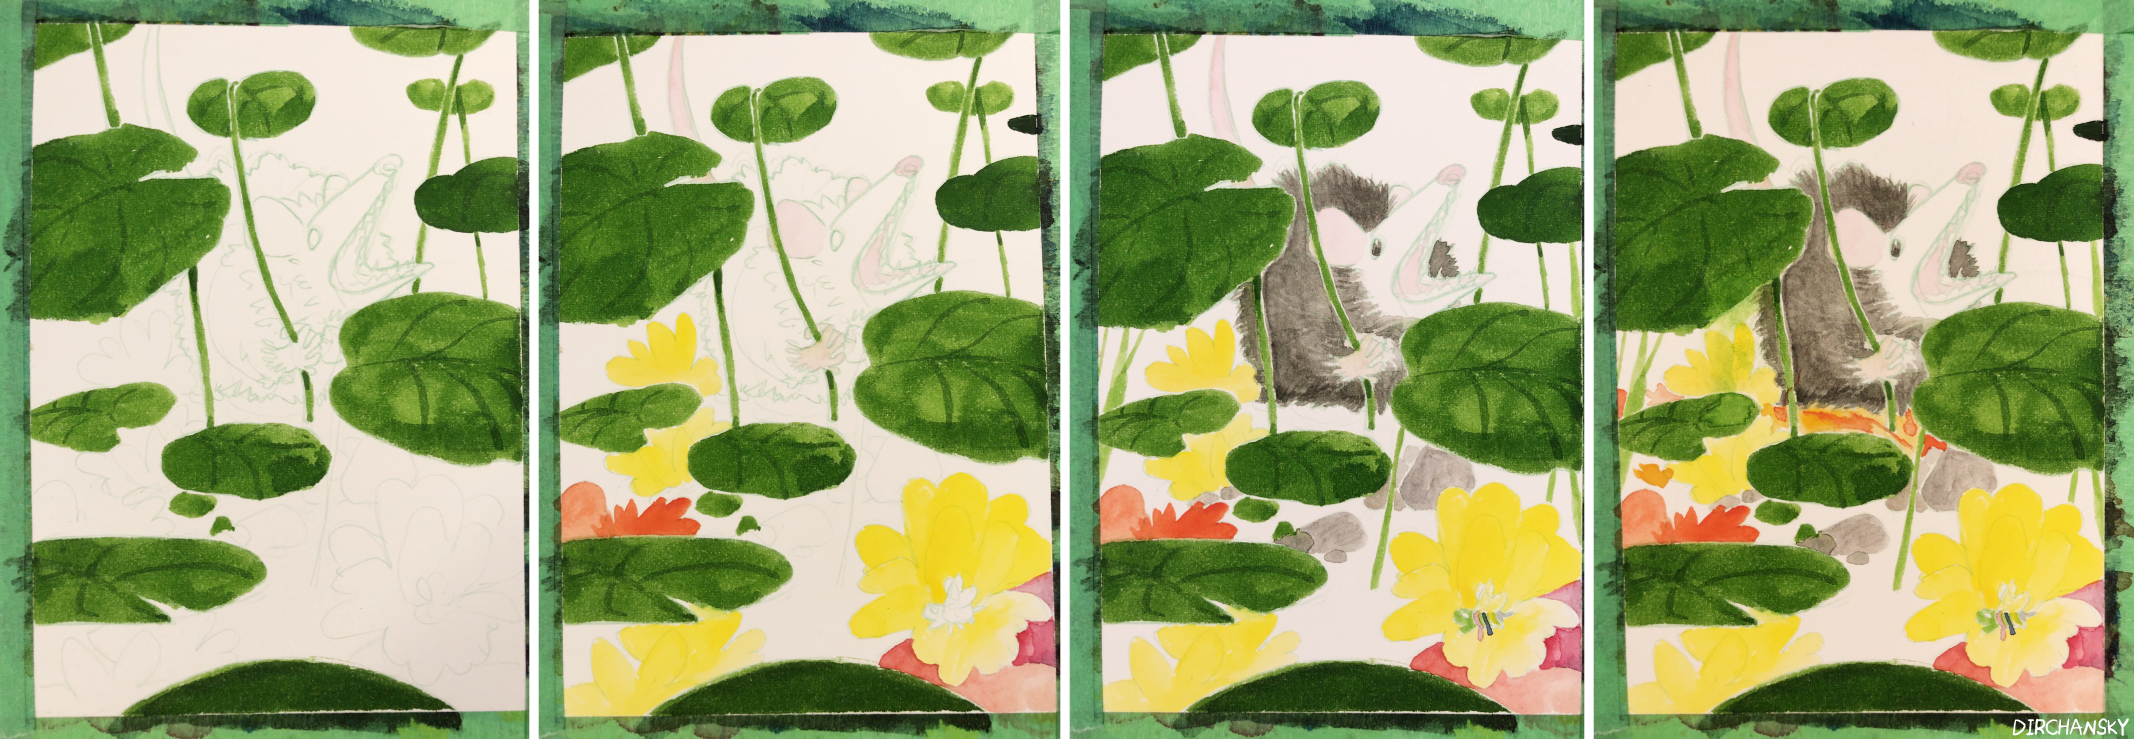 Photo collage of several work-in-progress paintings, showing progression of painting of a possum sitting amongst leaves, rocks, and flowers.